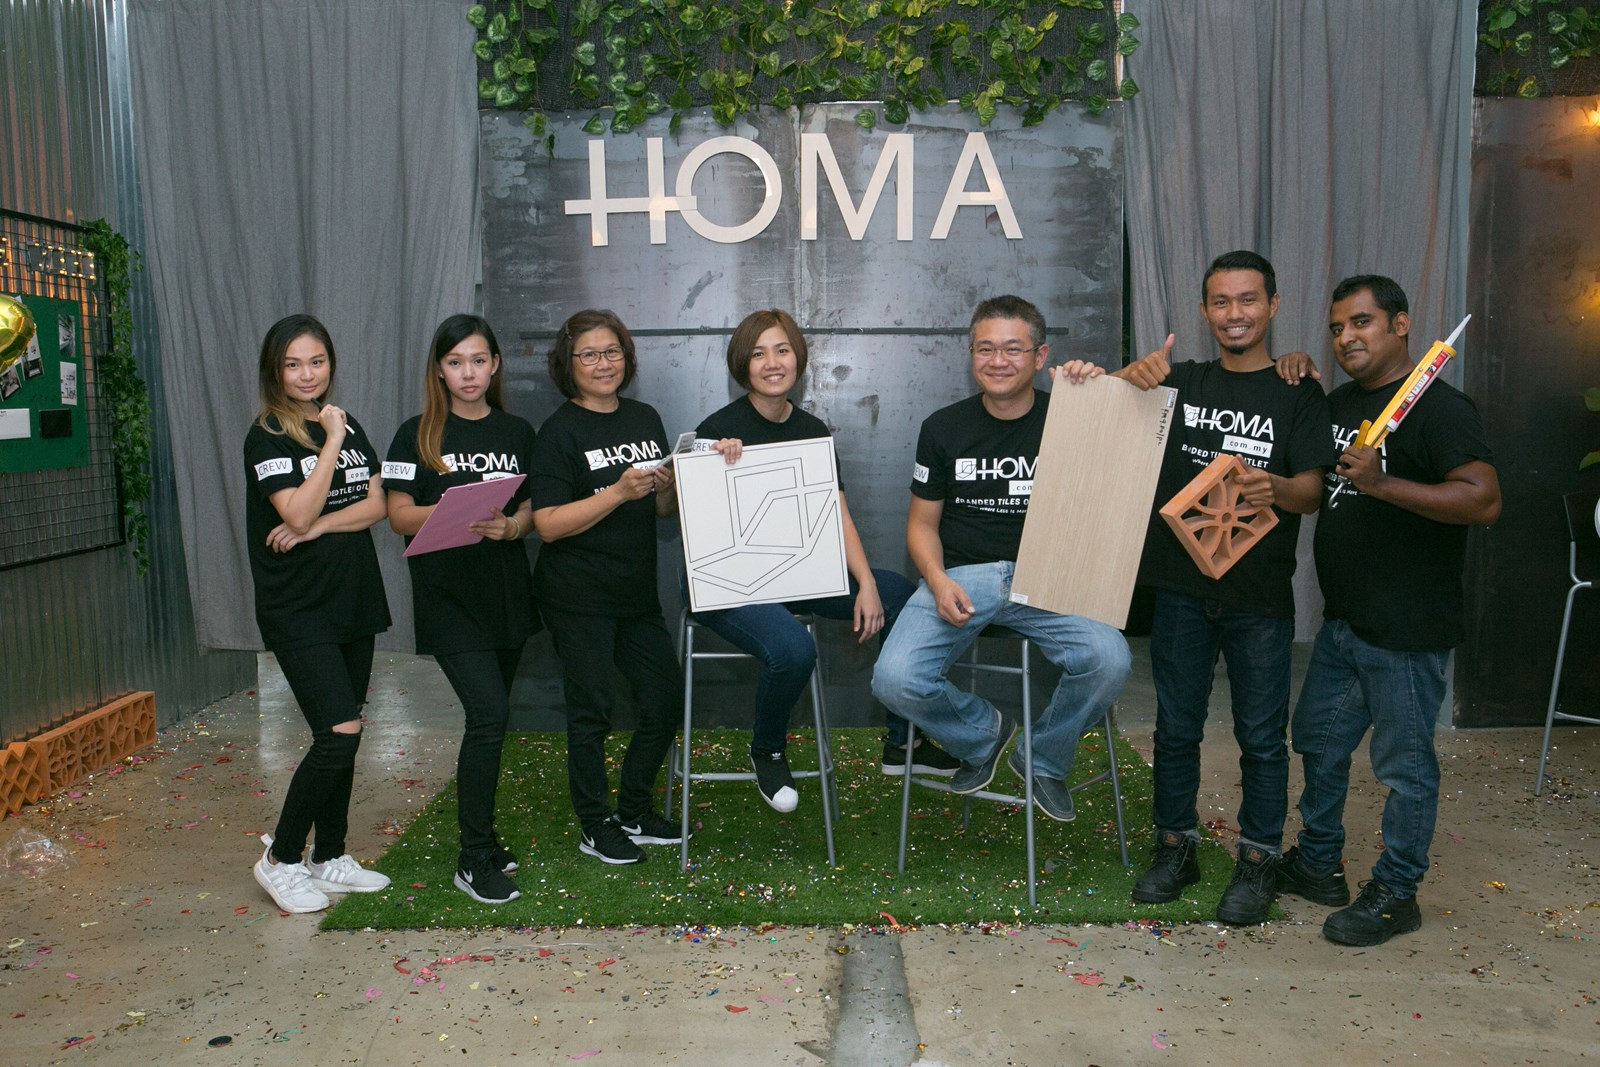 HOMA team ready to assist customers with their enquiries on tiles